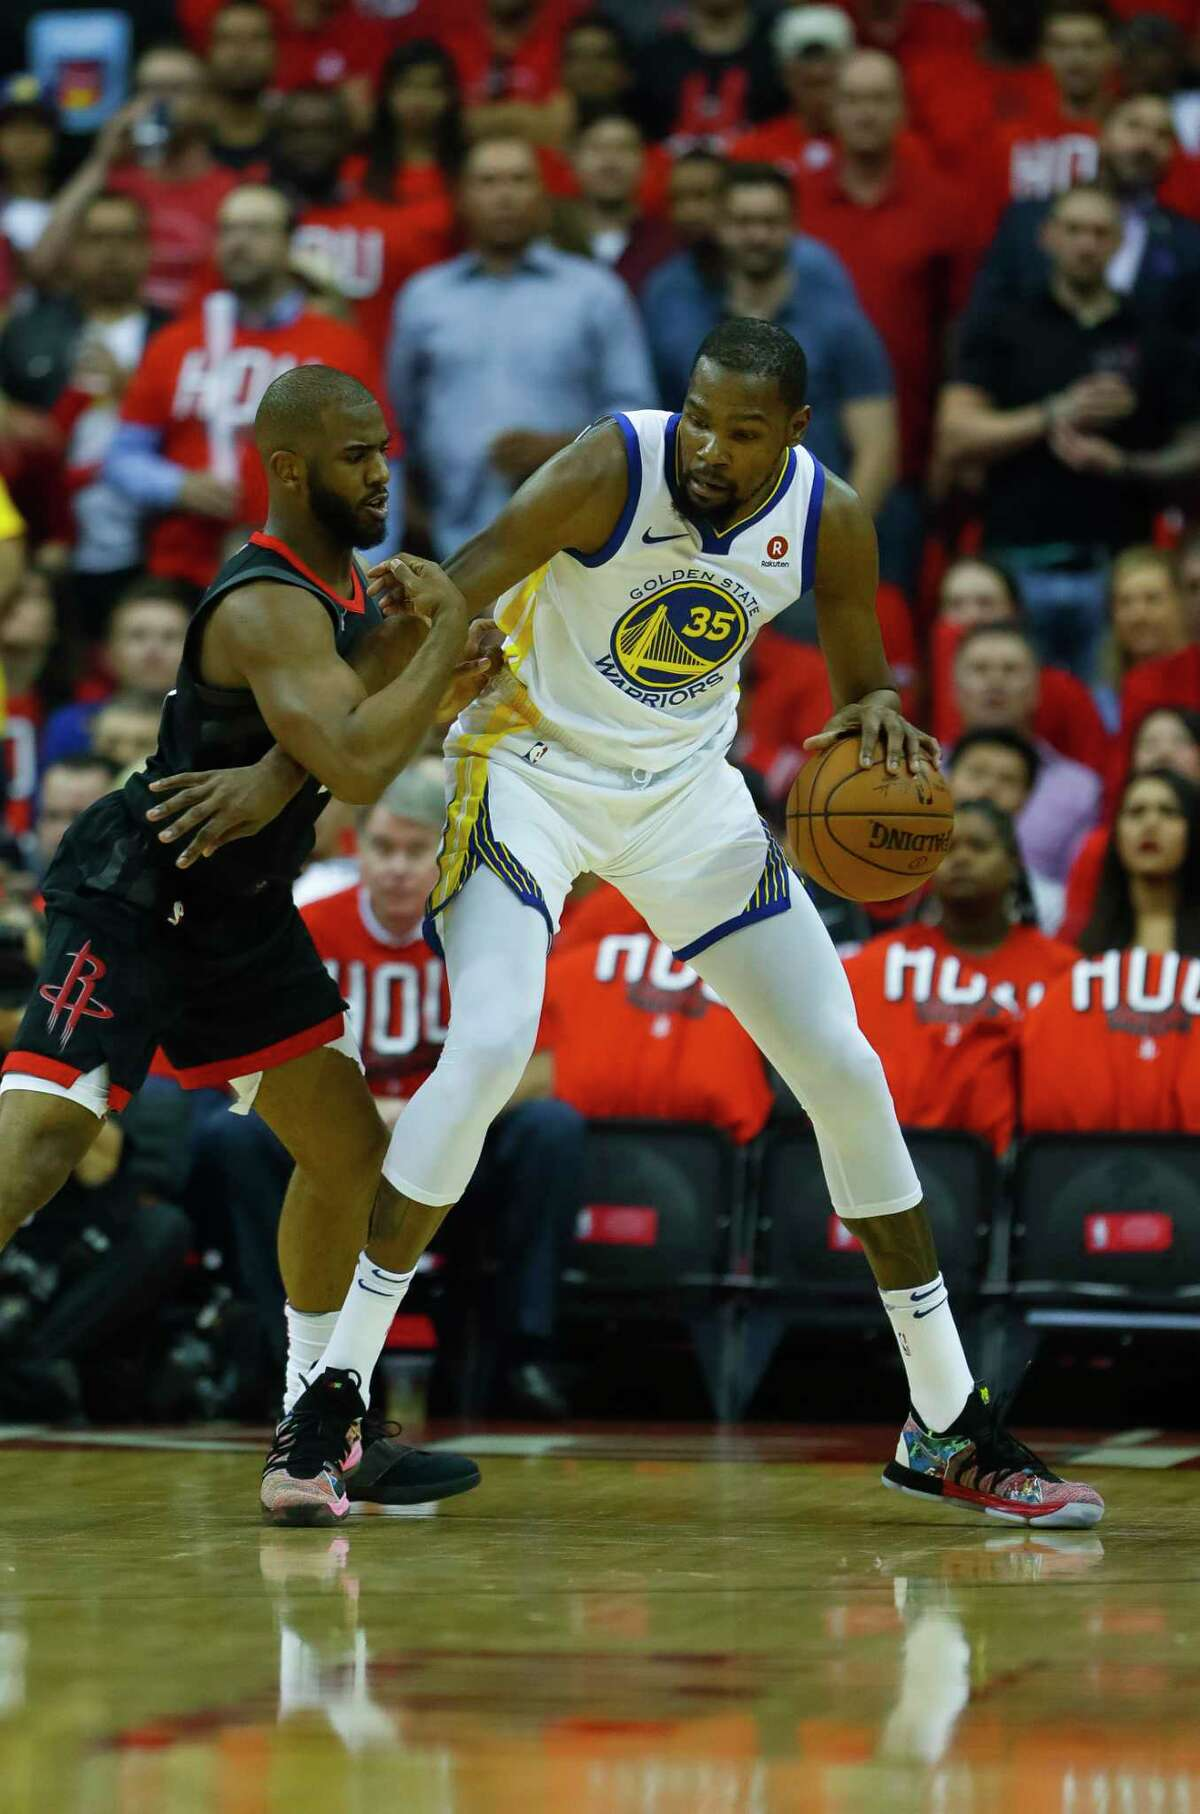 Houston Rockets guard Chris Paul (3) guards Golden State Warriors forward Kevin Durant (35) during the first half in Game 1 of the NBA Western Conference Finals at Toyota Center on Monday, May 14, 2018, in Houston.